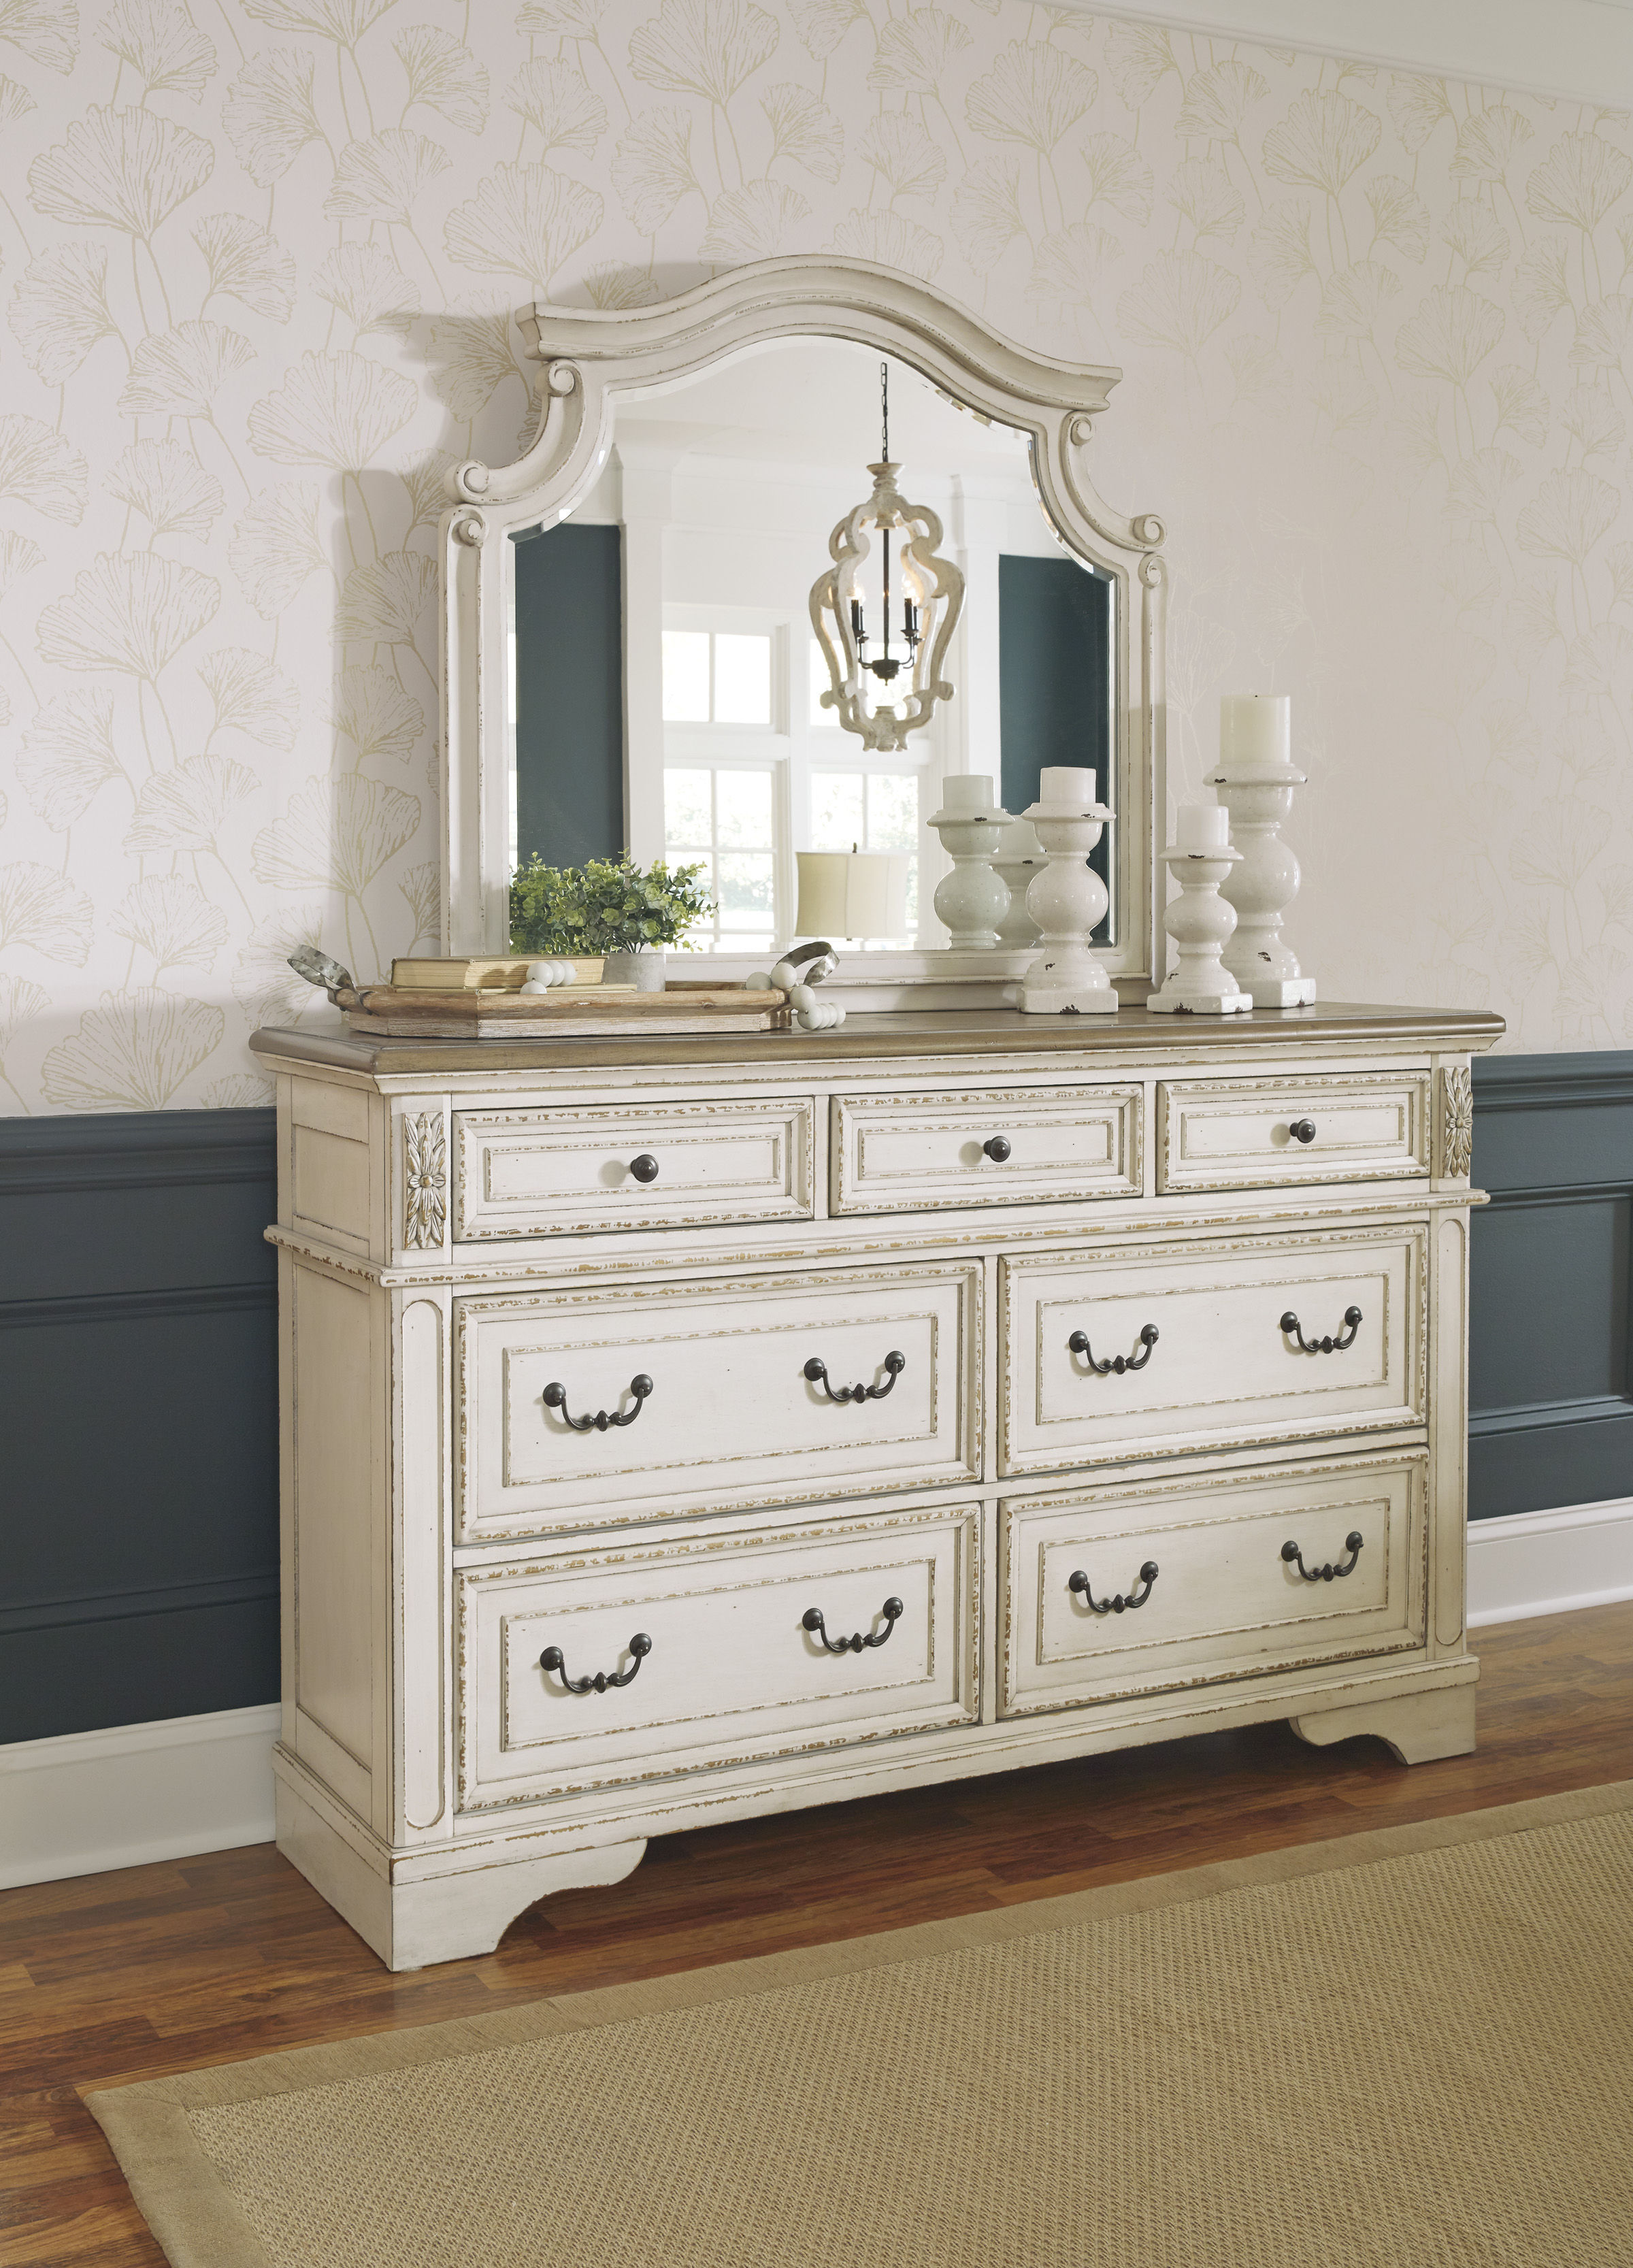 Ashley Furniture Realyn Chipped White Dresser And Mirror The Cly Home